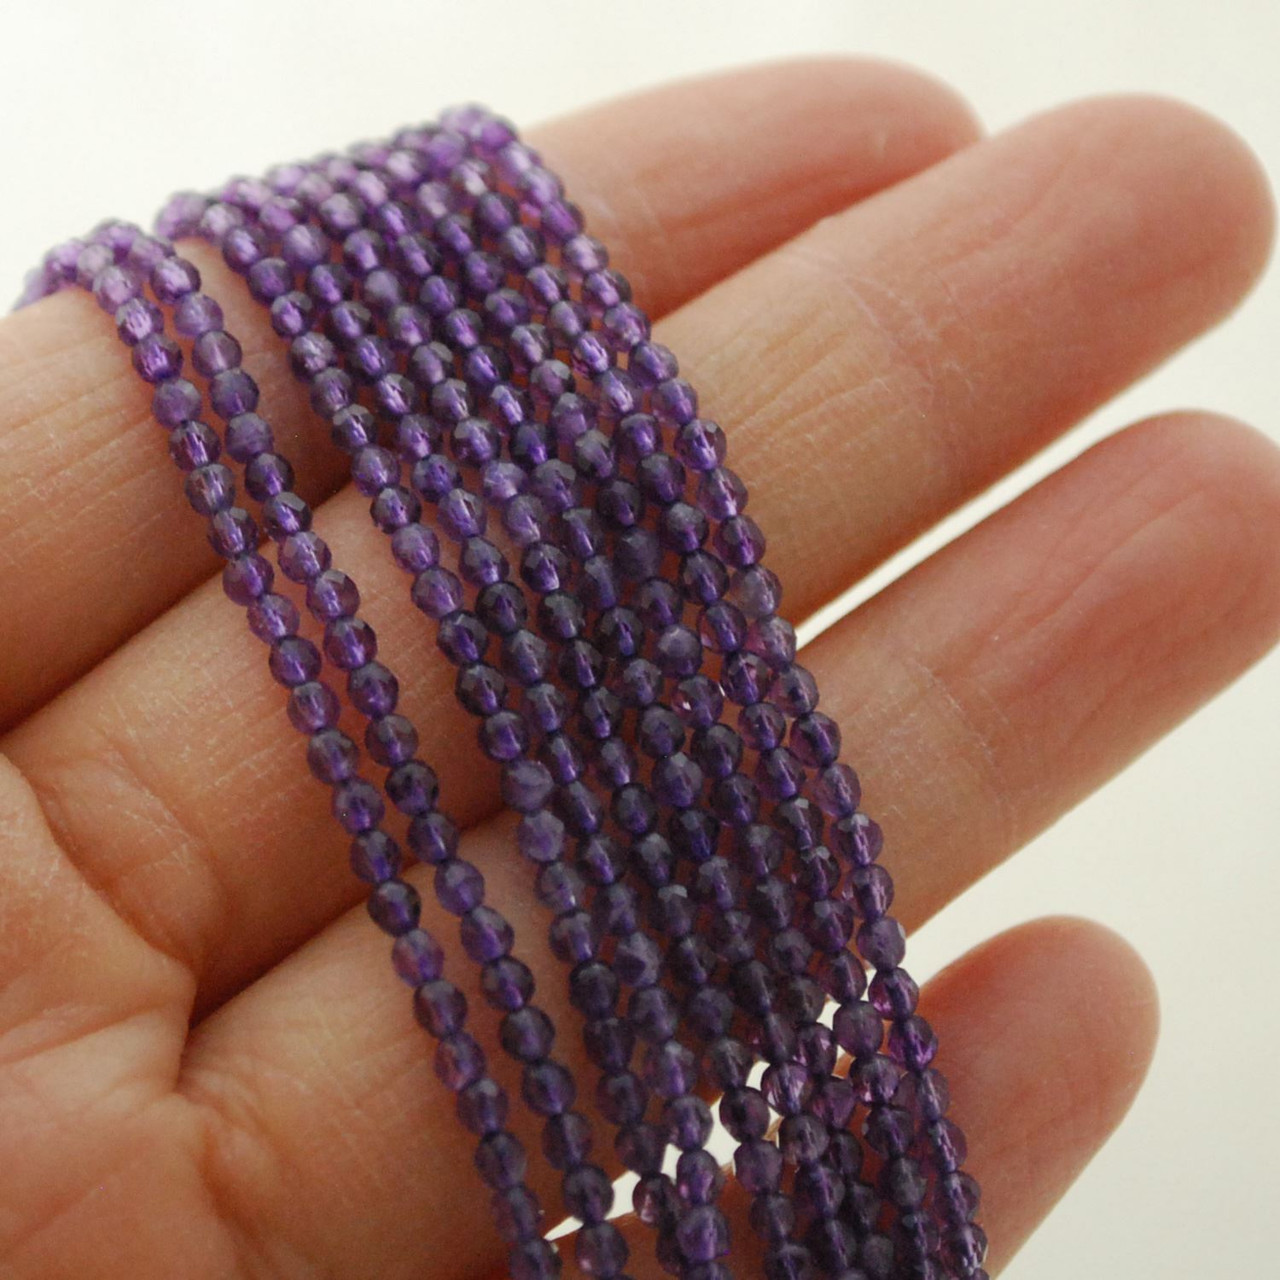 15.5 Natural Amethyst Micro-faceted Pink Quartz Round Beads Gemstone Strawberry Quartz Beads Tiny Cut Faceted Beads 2 mm 3 mm Bulk Lot Bead